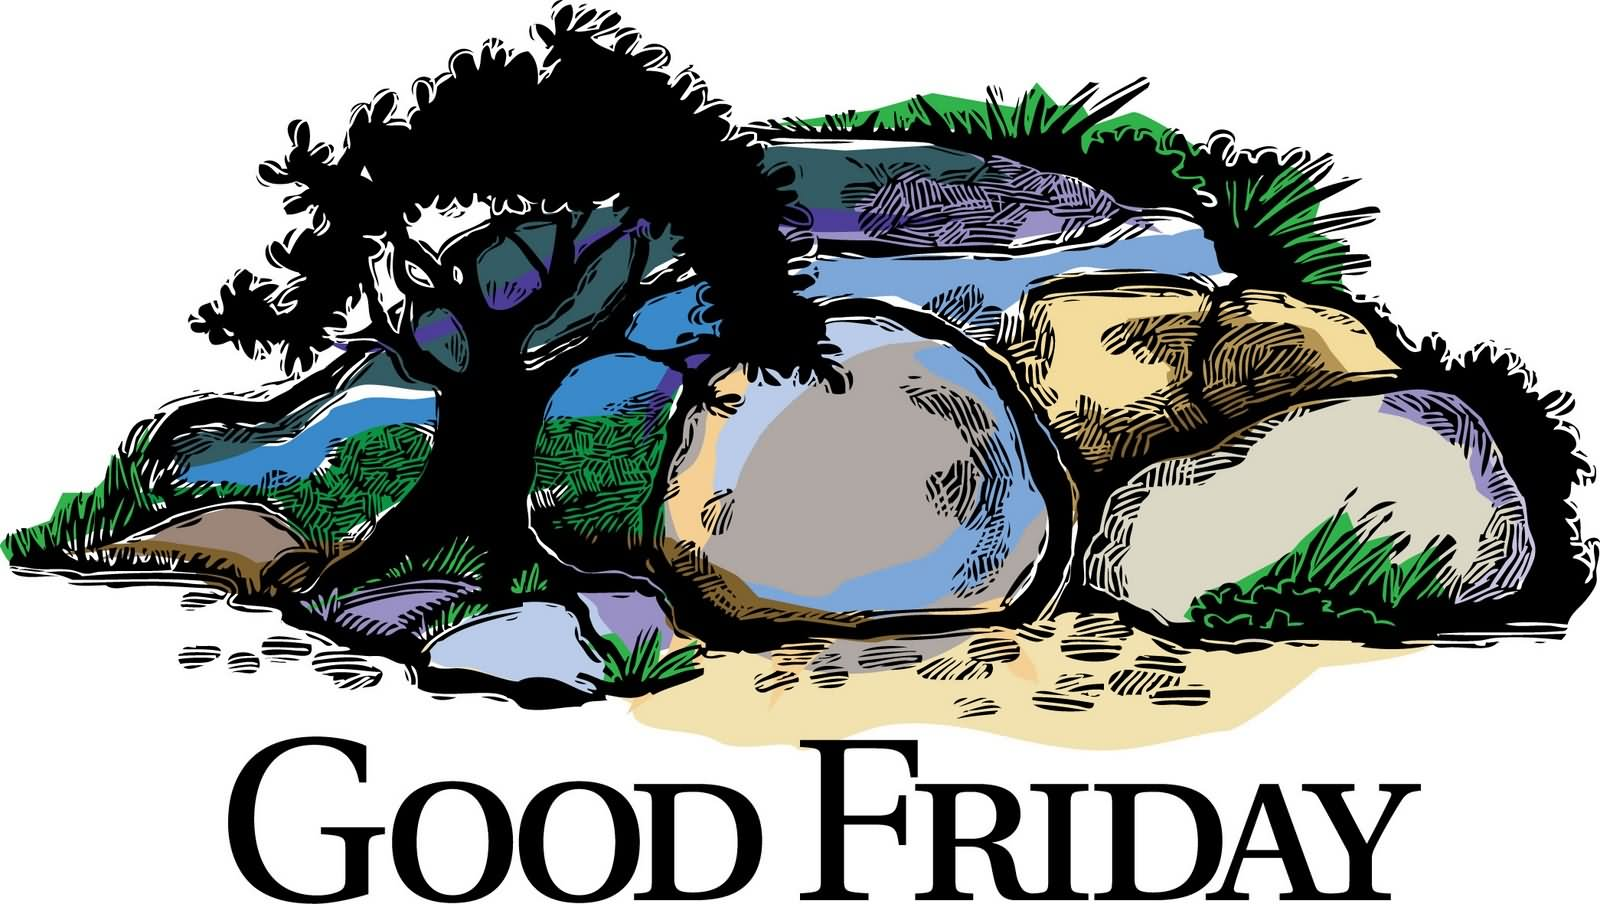 20 very beautiful good friday clipart pictures rh askideas com friday clip art free friday clipart graphics images